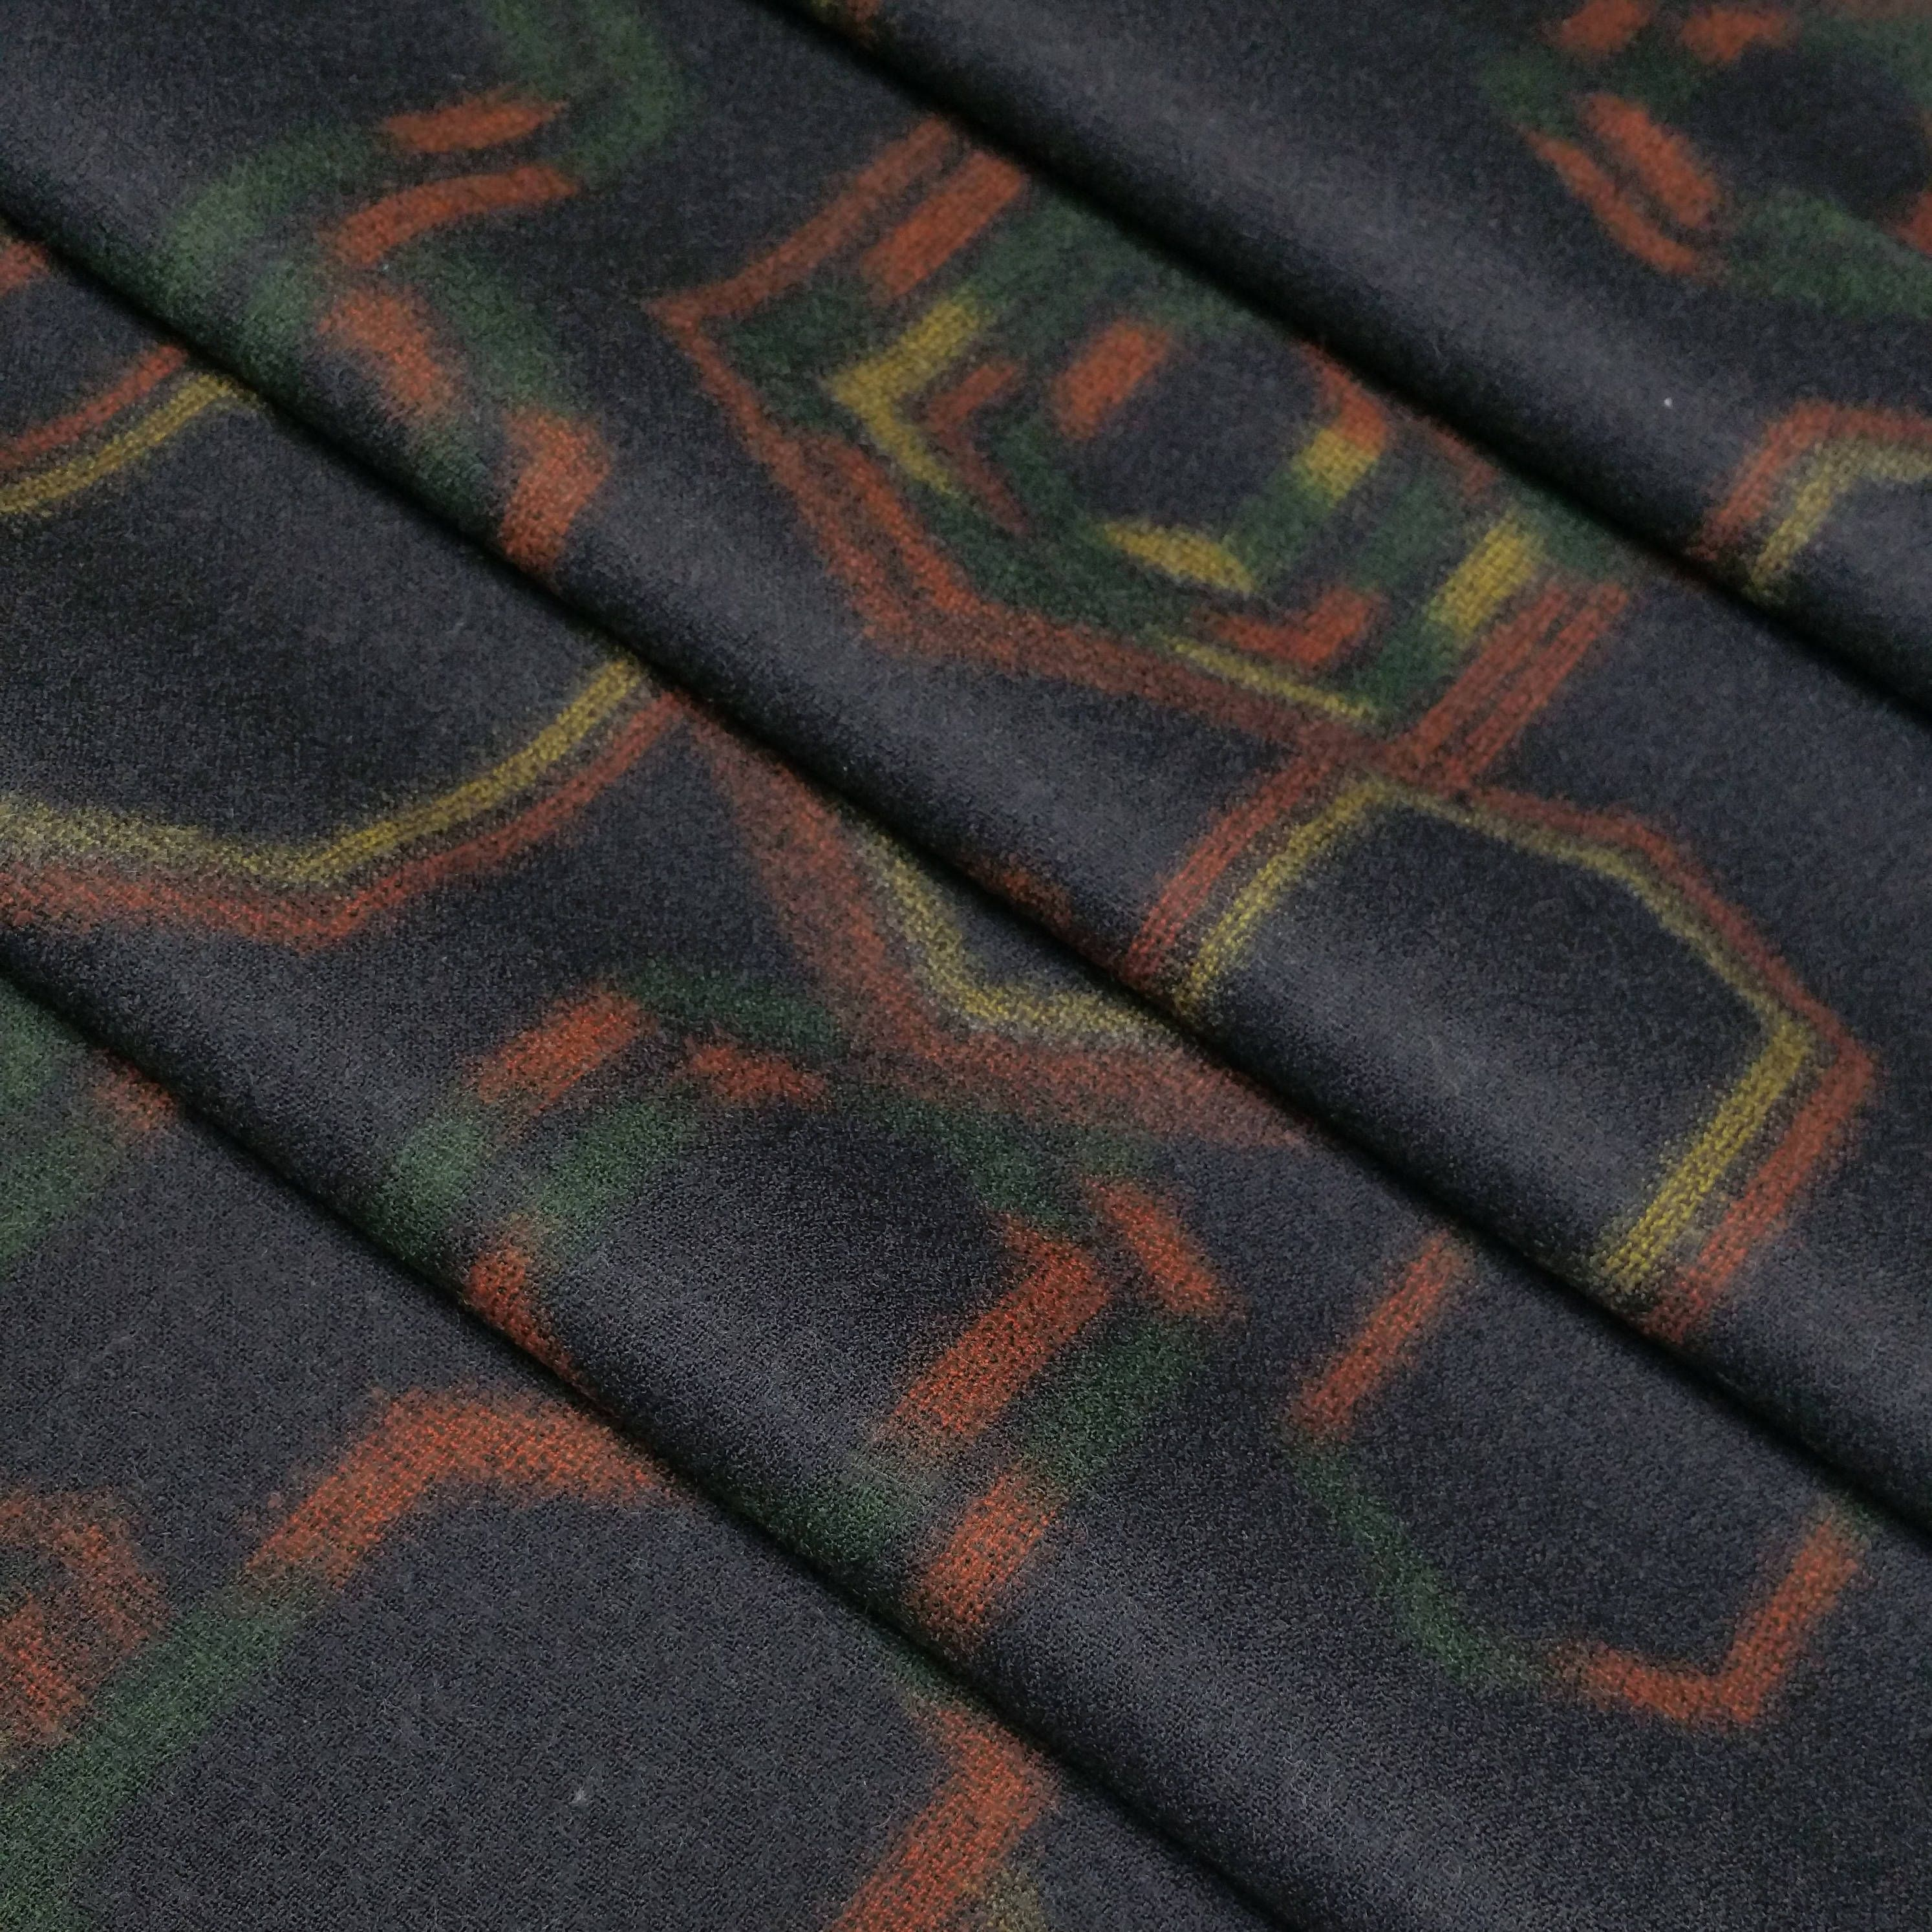 Vintage Double Wide Black Wool Flannel Kimono Fabric With Tortoise Shell Kikko Pattern By The Yard Wool Flannel Black Wool Flannel Kimono